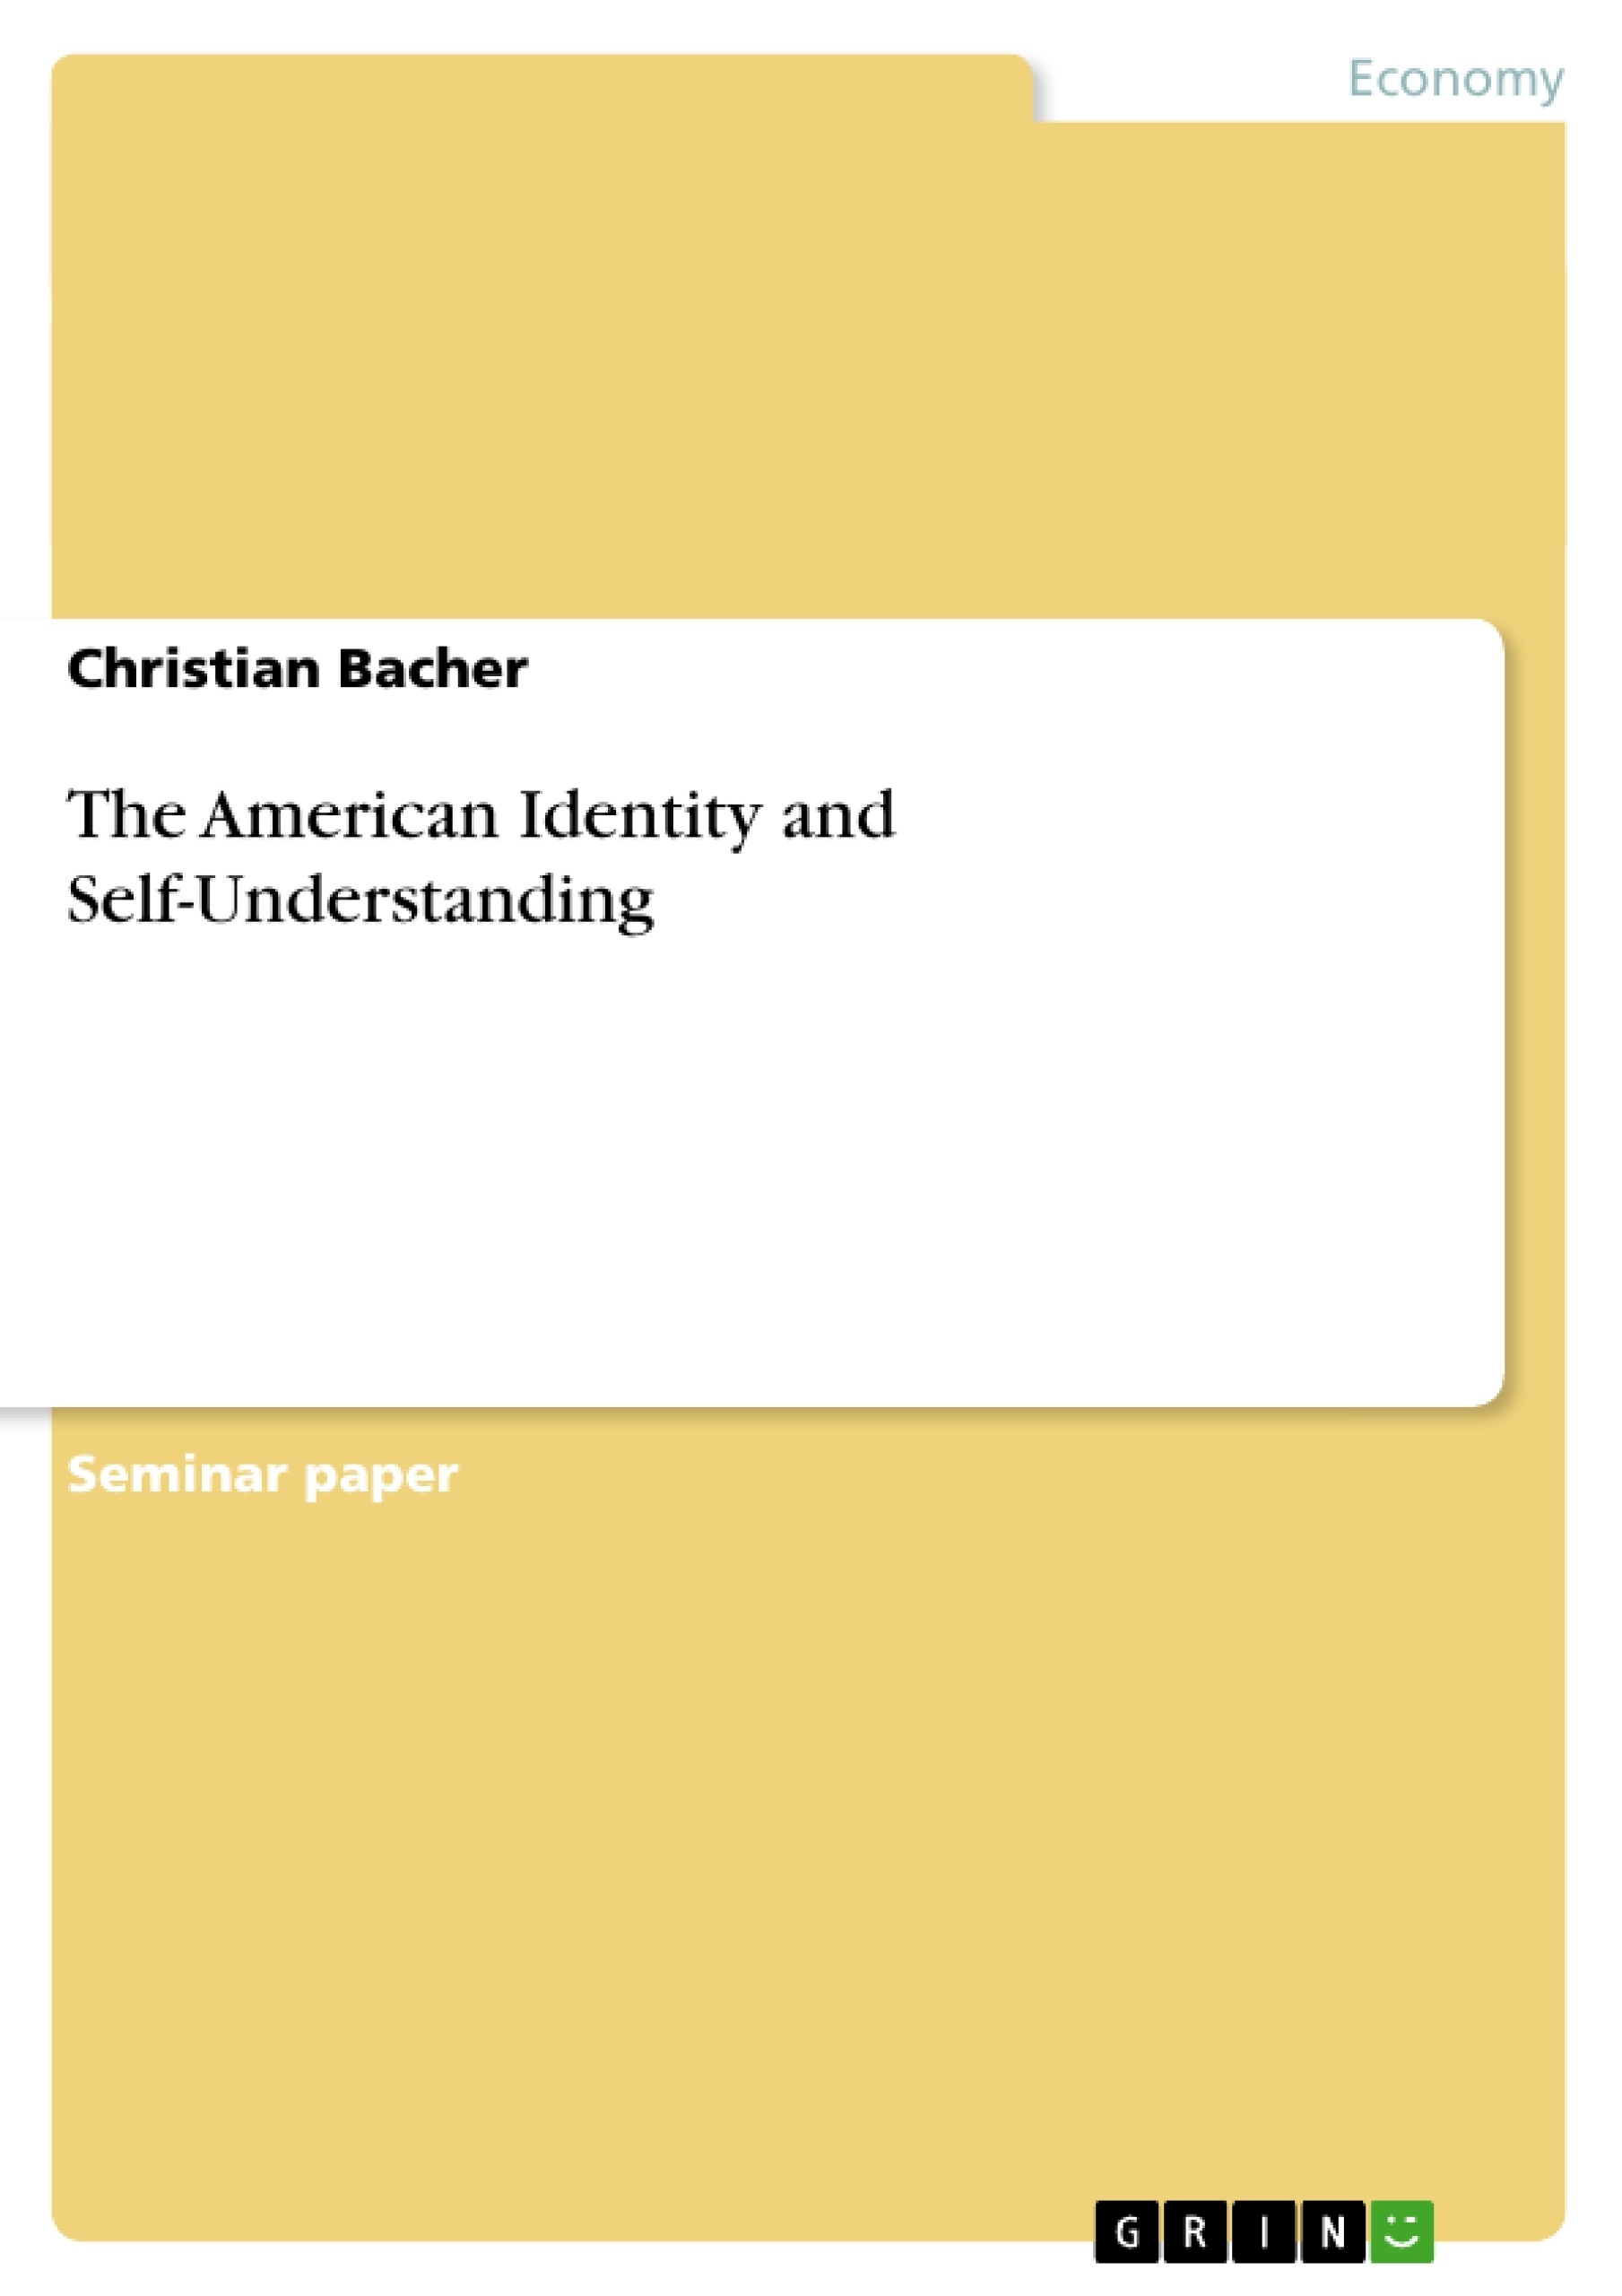 Title: The American Identity and Self-Understanding